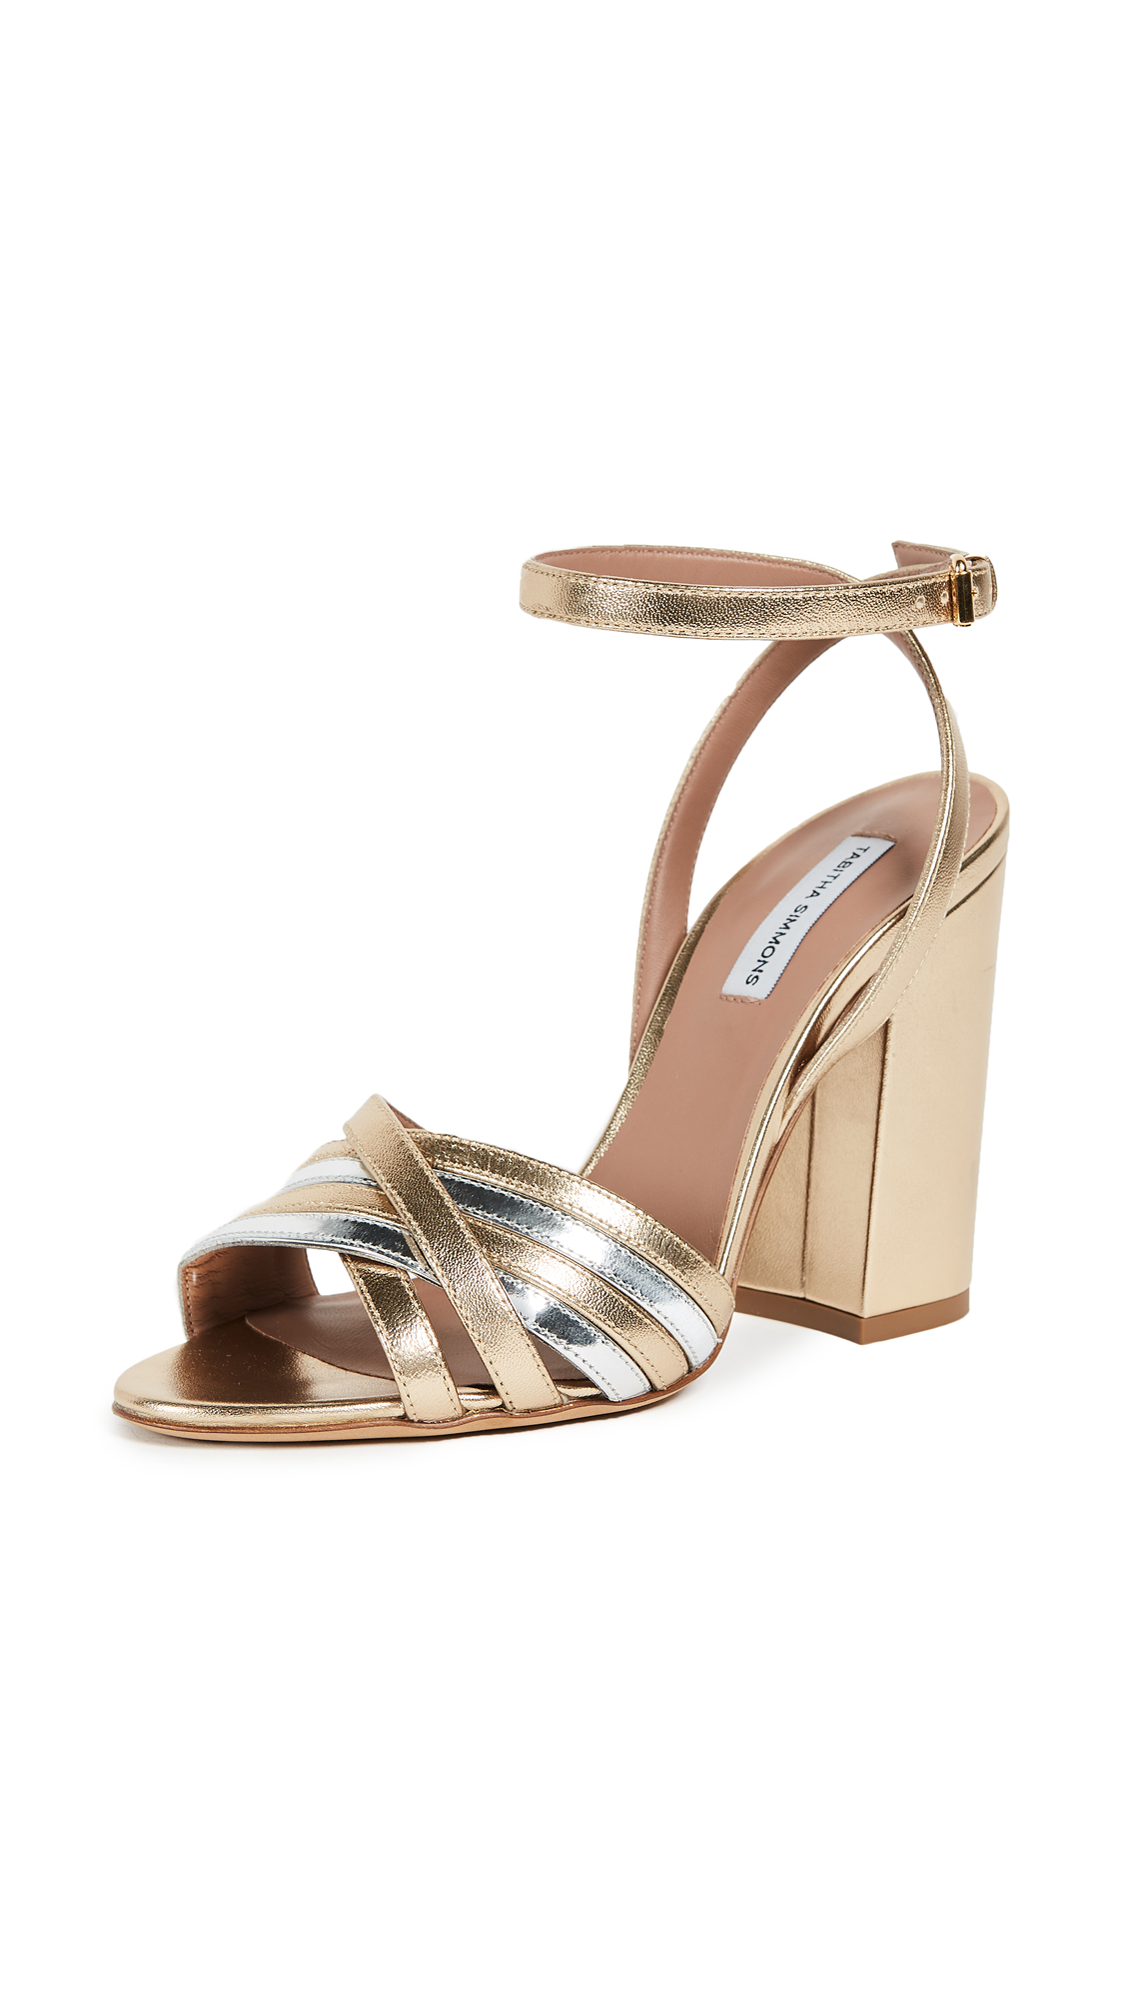 Tabitha Simmons Toni Metallic Sandal Pumps - Gold/Silver